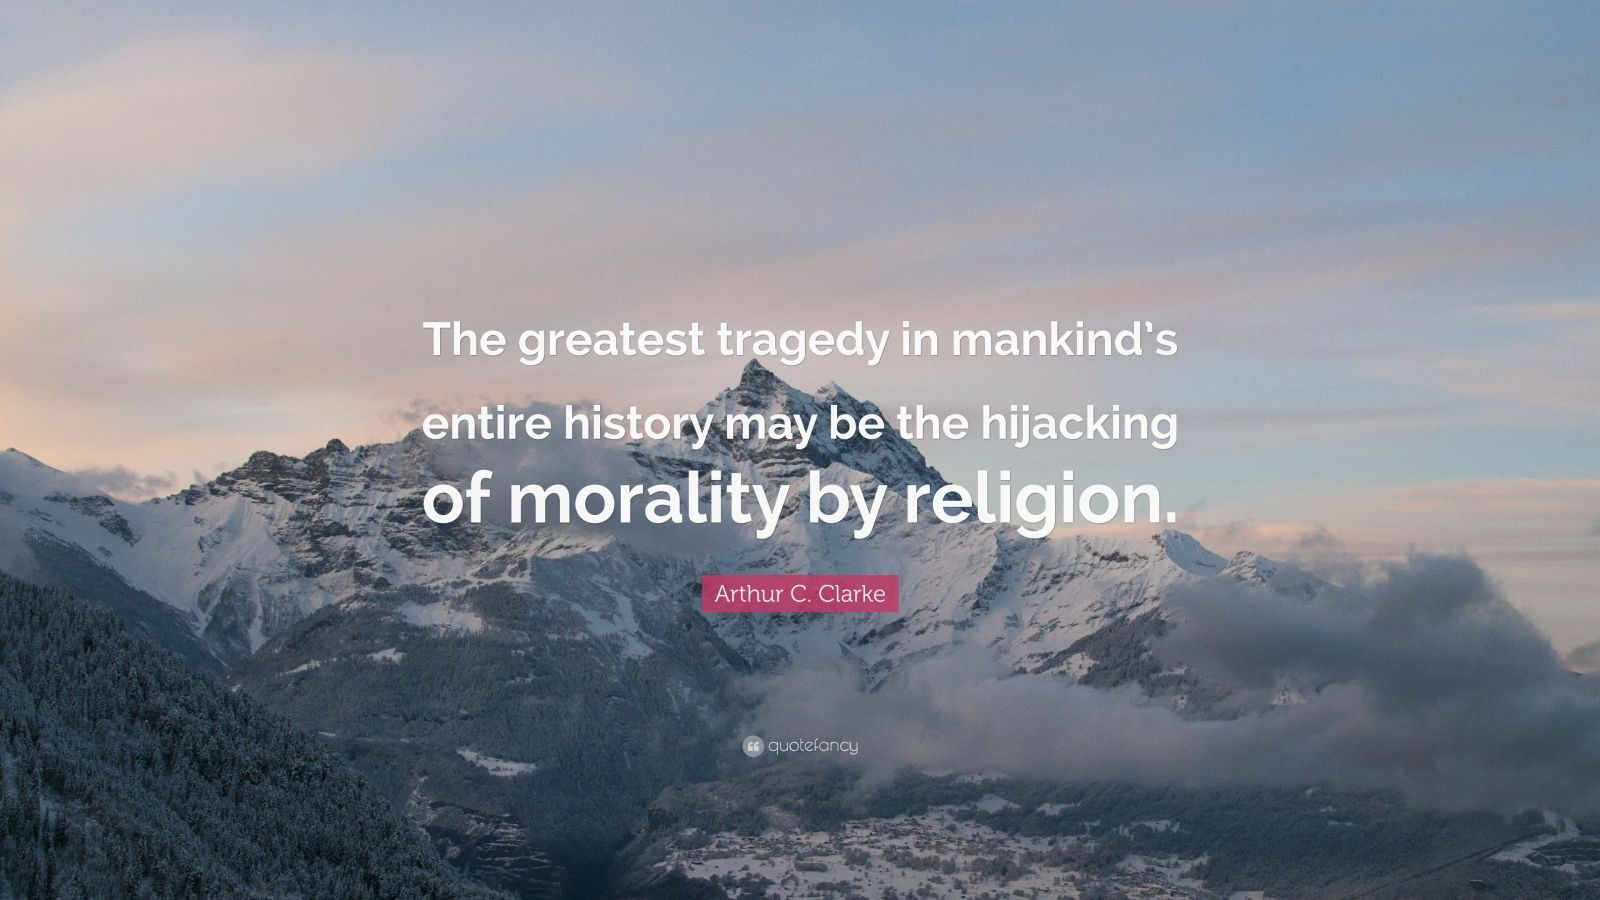 """Arthur C. Clarke Quote: """"The greatest tragedy in mankind's entire history may be the hijacking of morality by religion."""""""